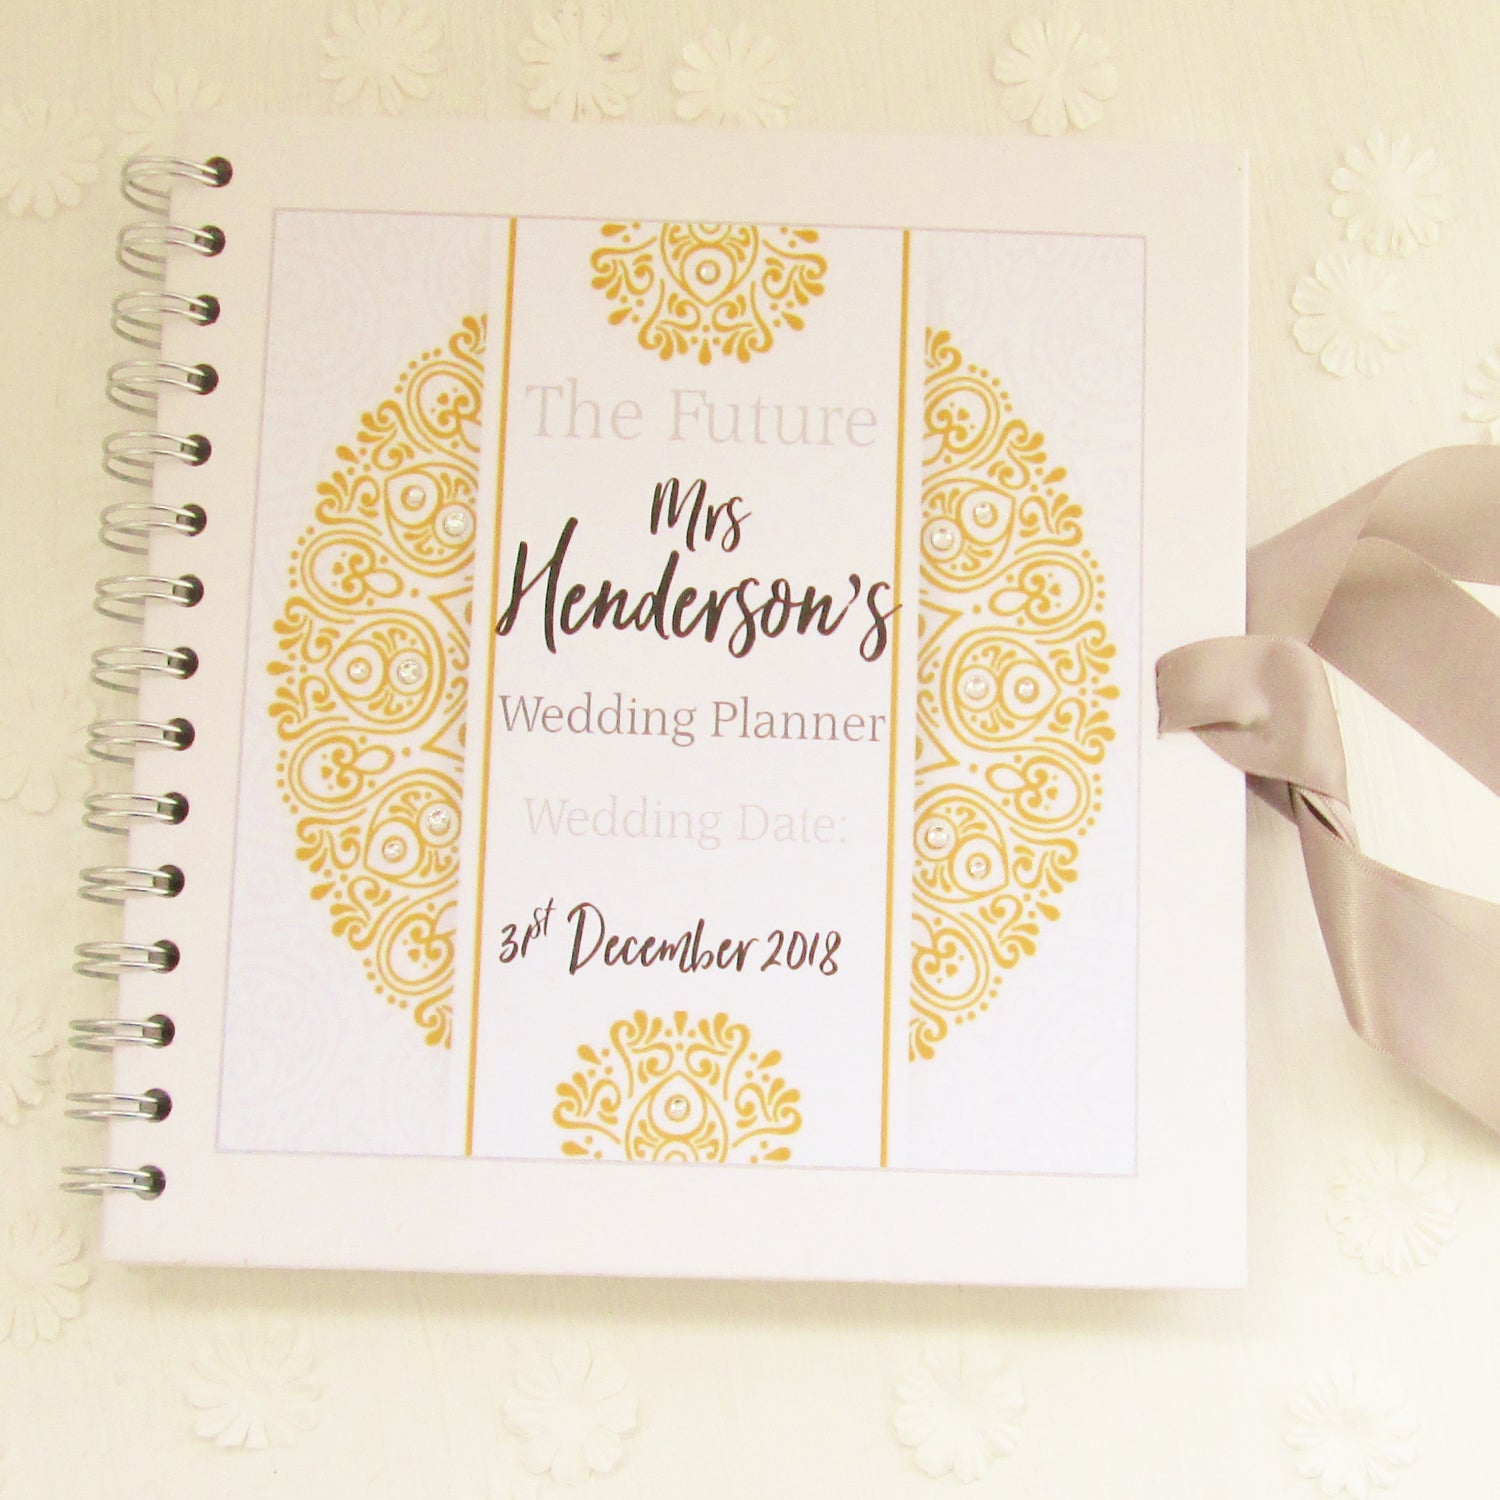 Personalised wedding organiser book good little gifts co personalised wedding organiser book solutioingenieria Image collections